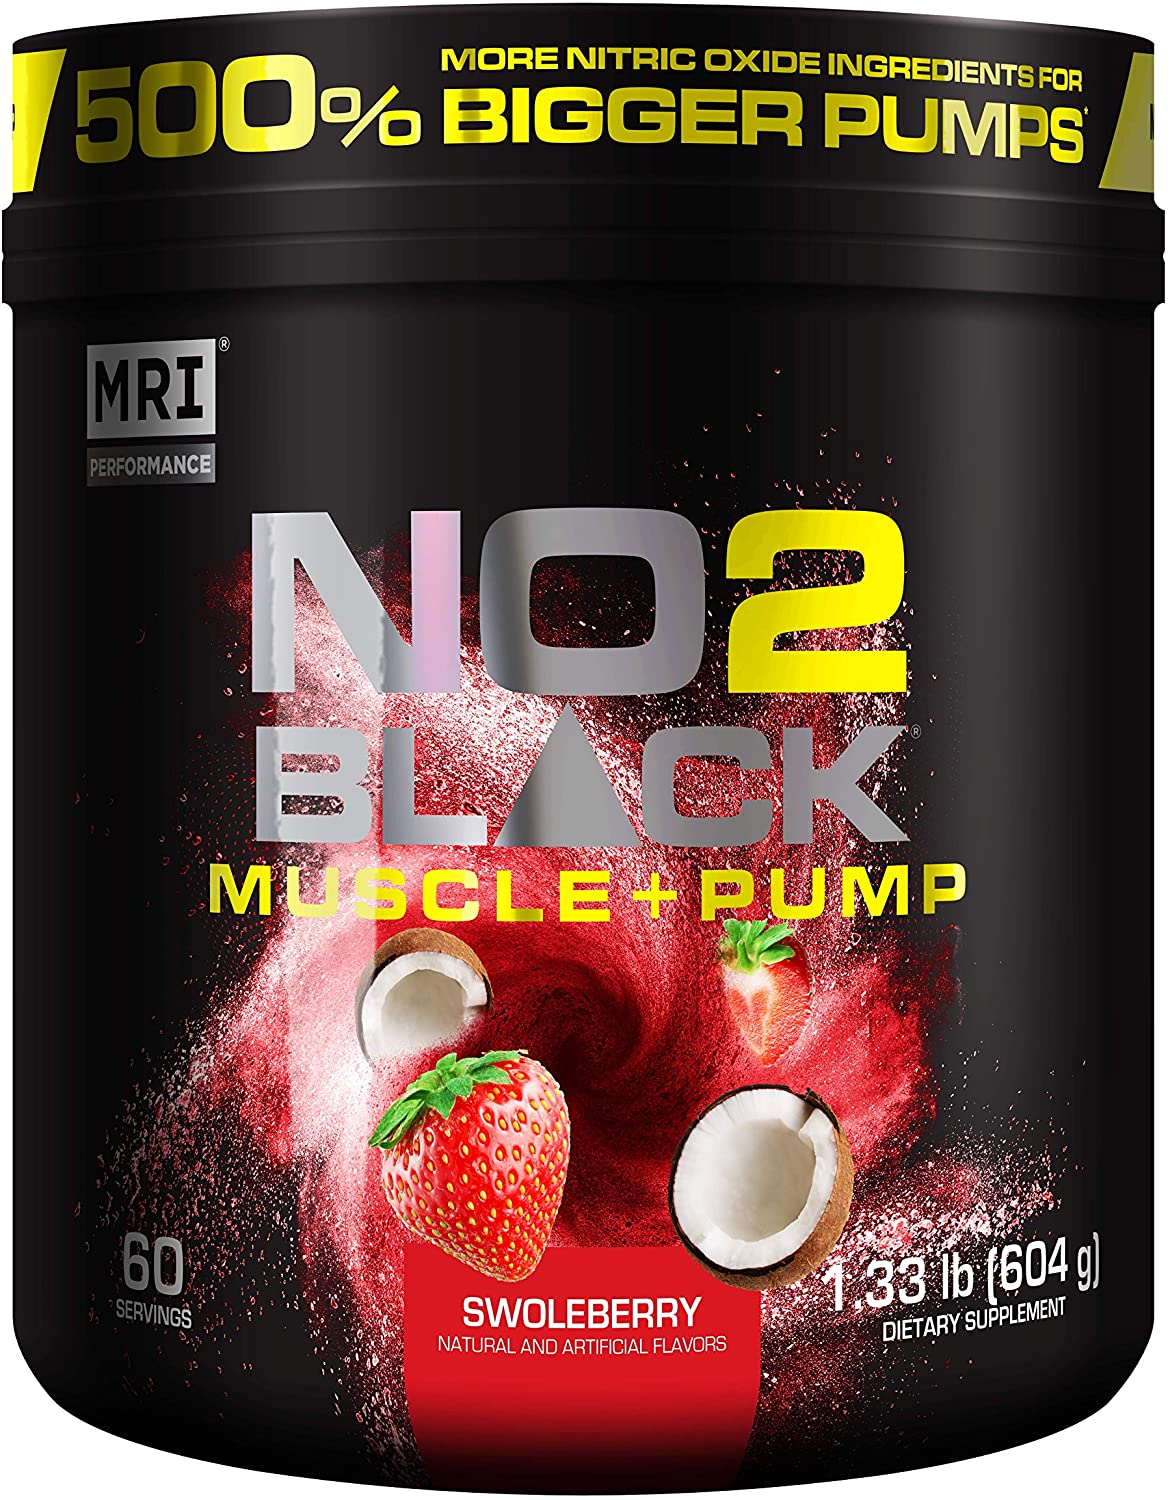 MRI NO2 Black Nitric Oxide Supplement for Pump, Muscle Growth, Vascularity & Energy - Powerful NO Booster Pre-Workout with Citrulline + 60 Servings (Swoleberry): Health & Personal Care